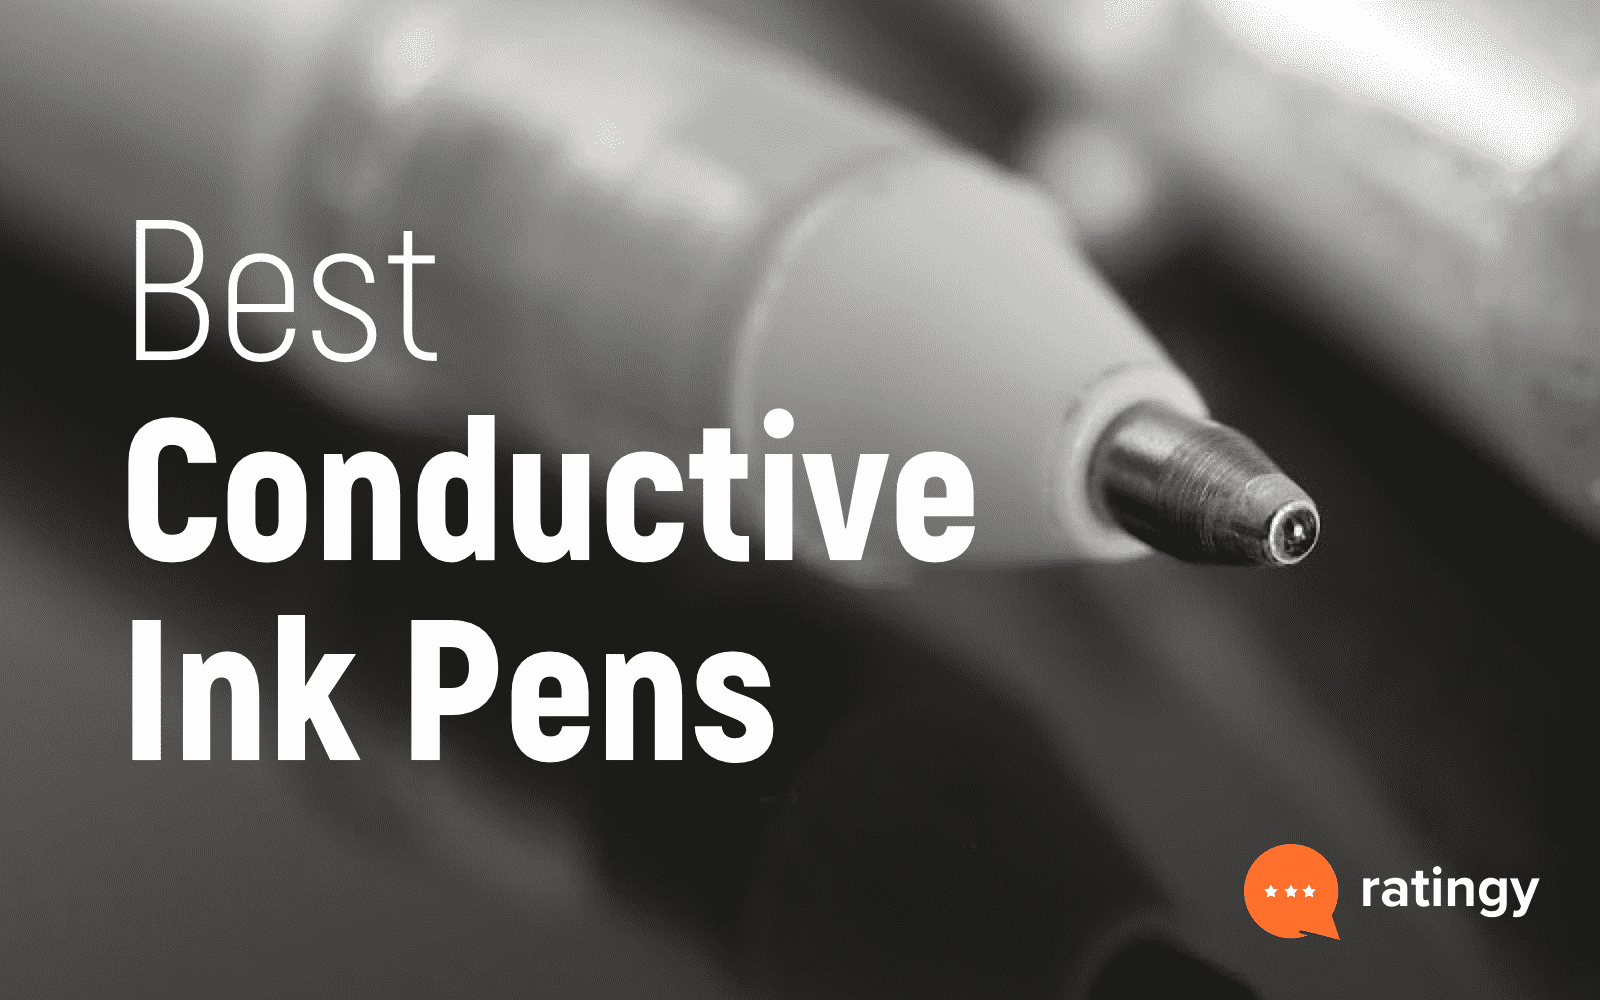 Best circuit conductive ink pens